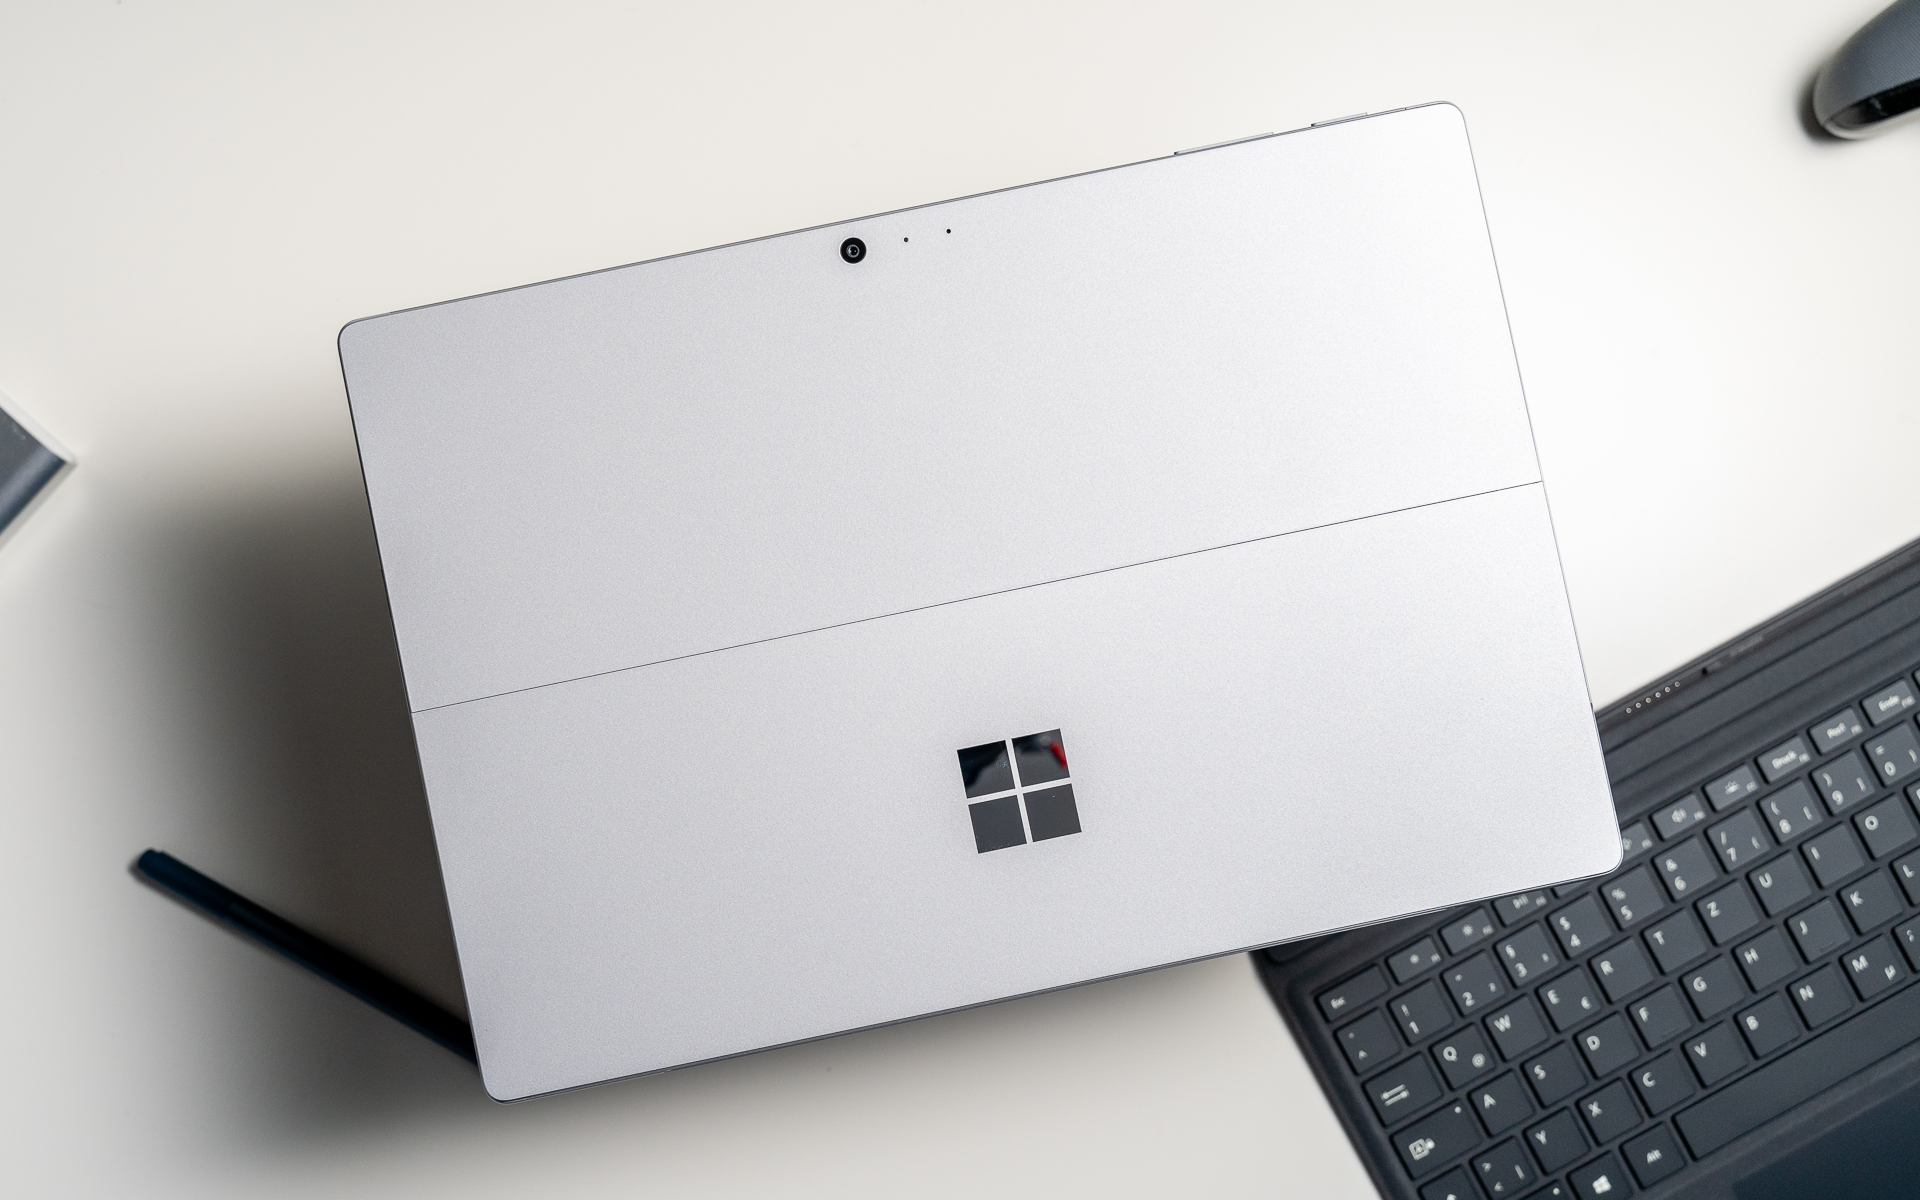 Microsoft Surface Pro 6 Build Quality